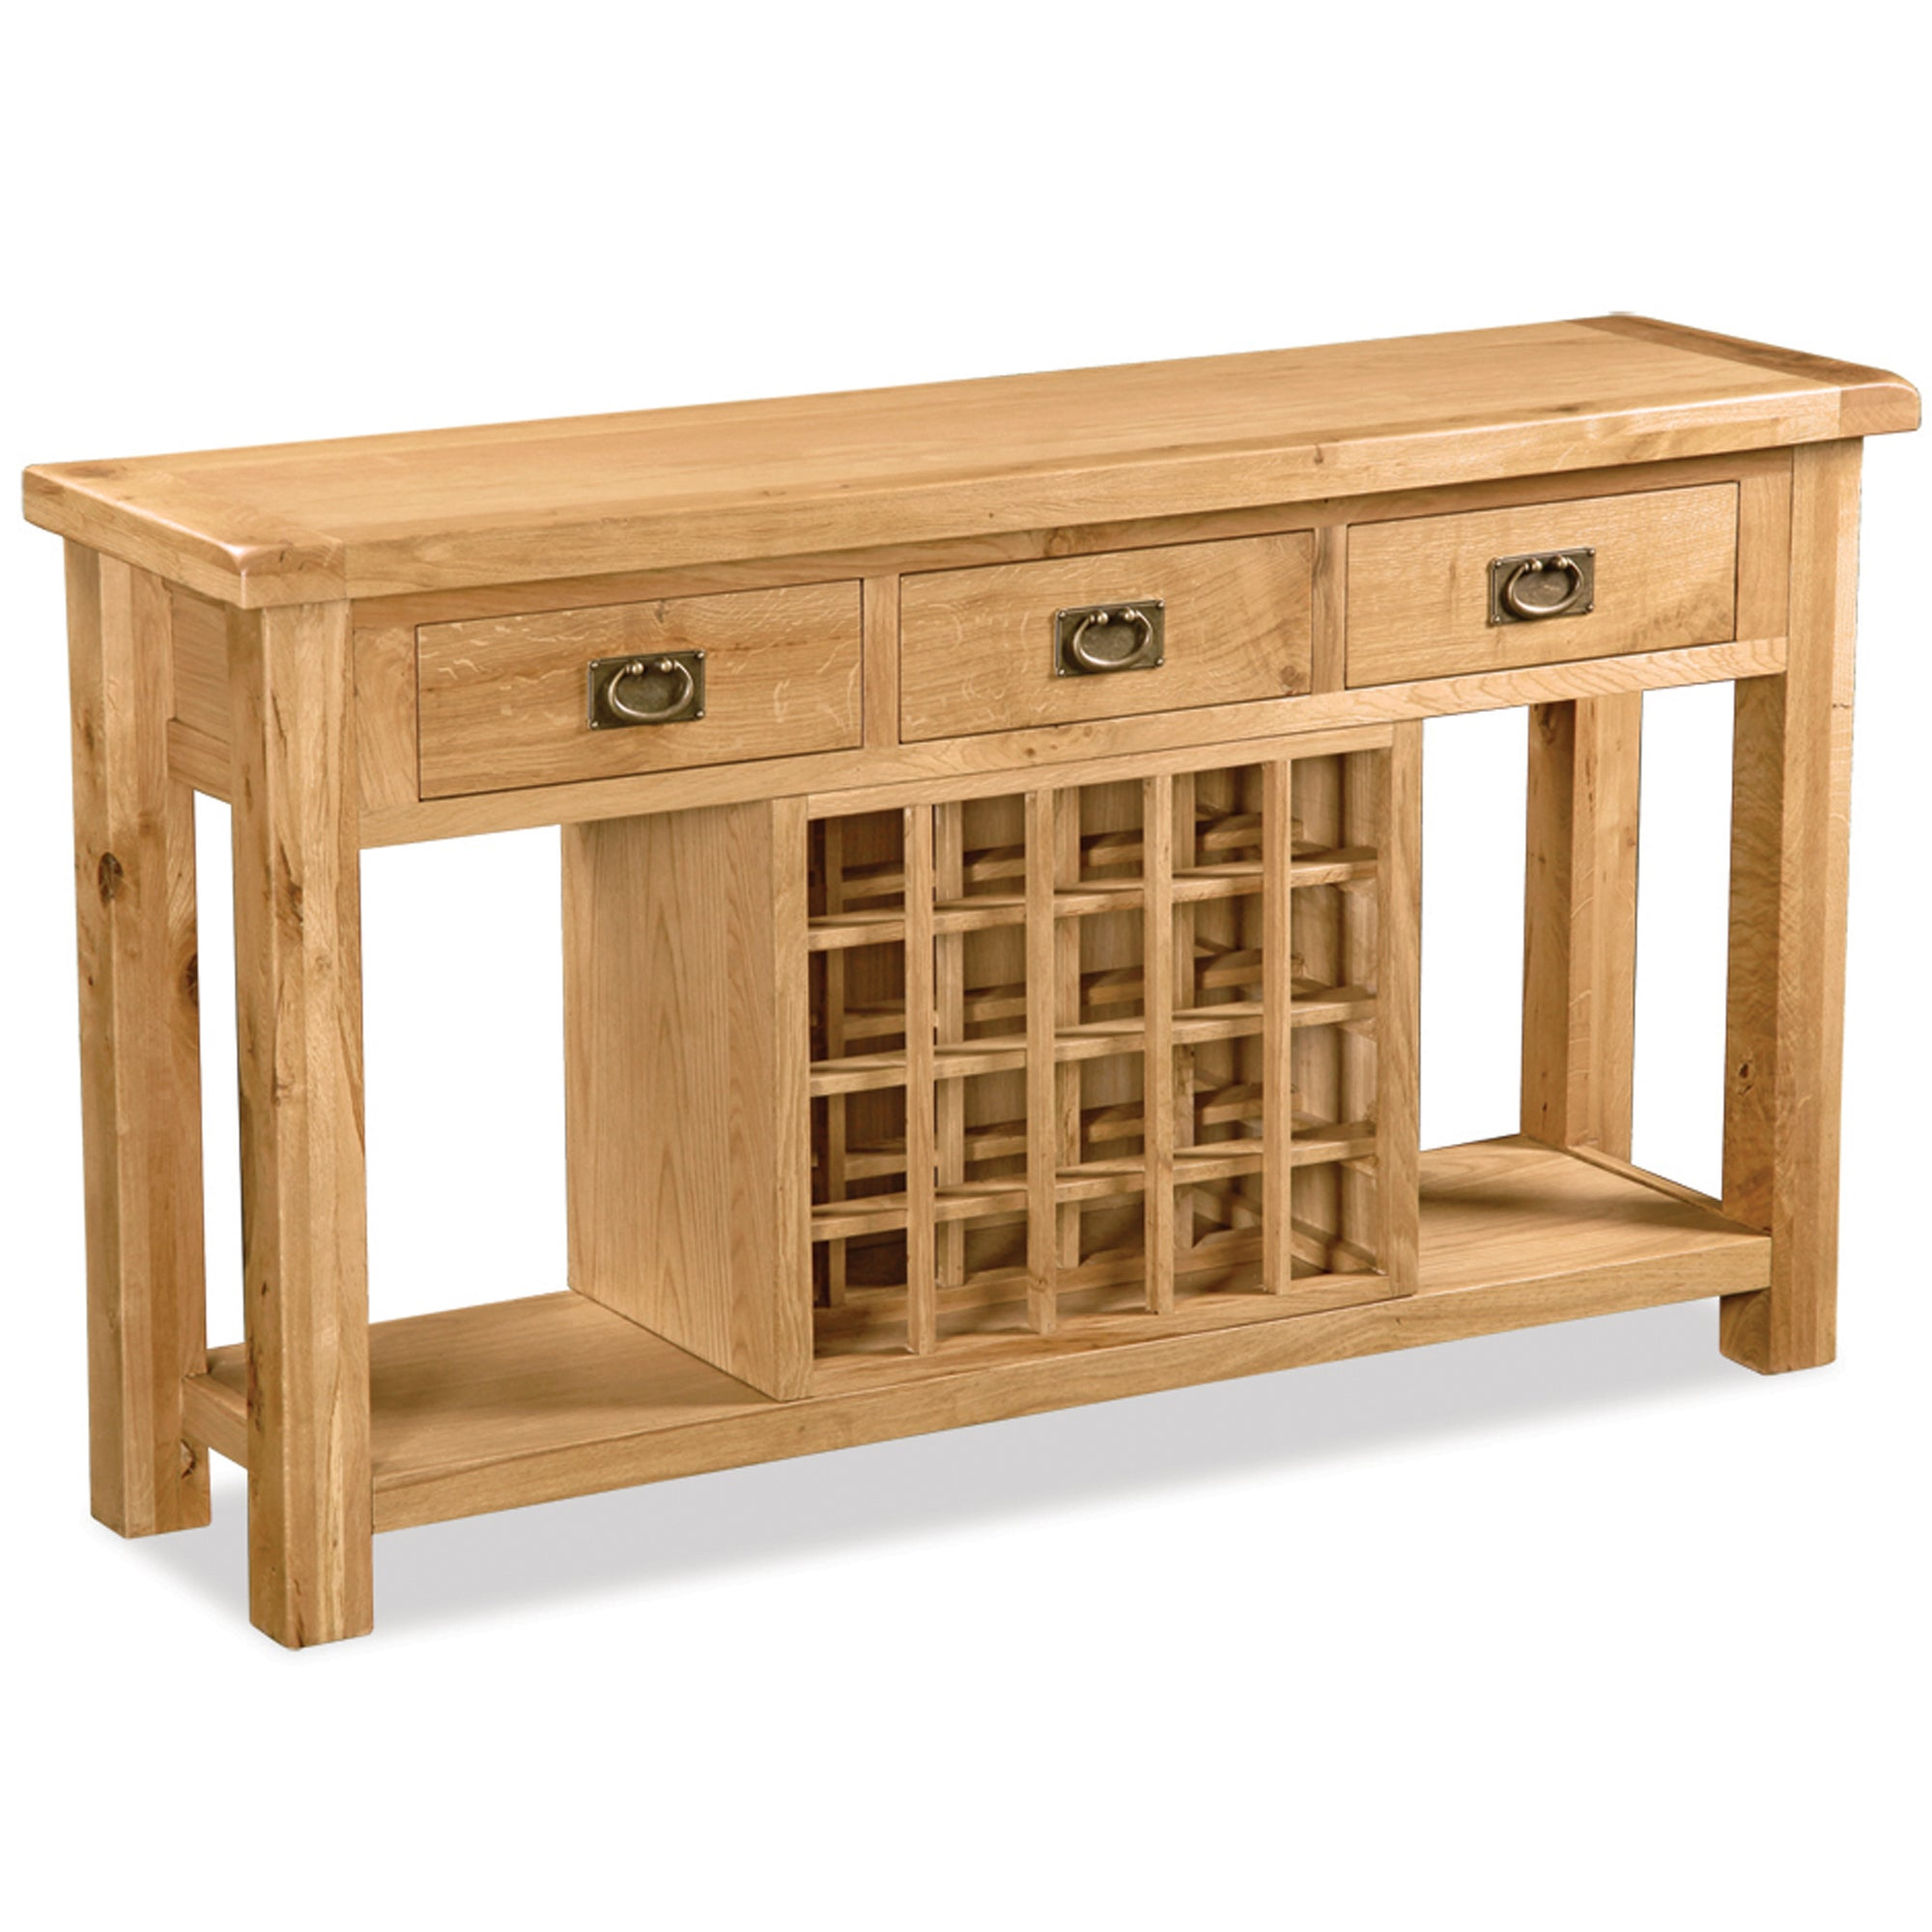 Aylesbury Oak Dining Furniture Collection